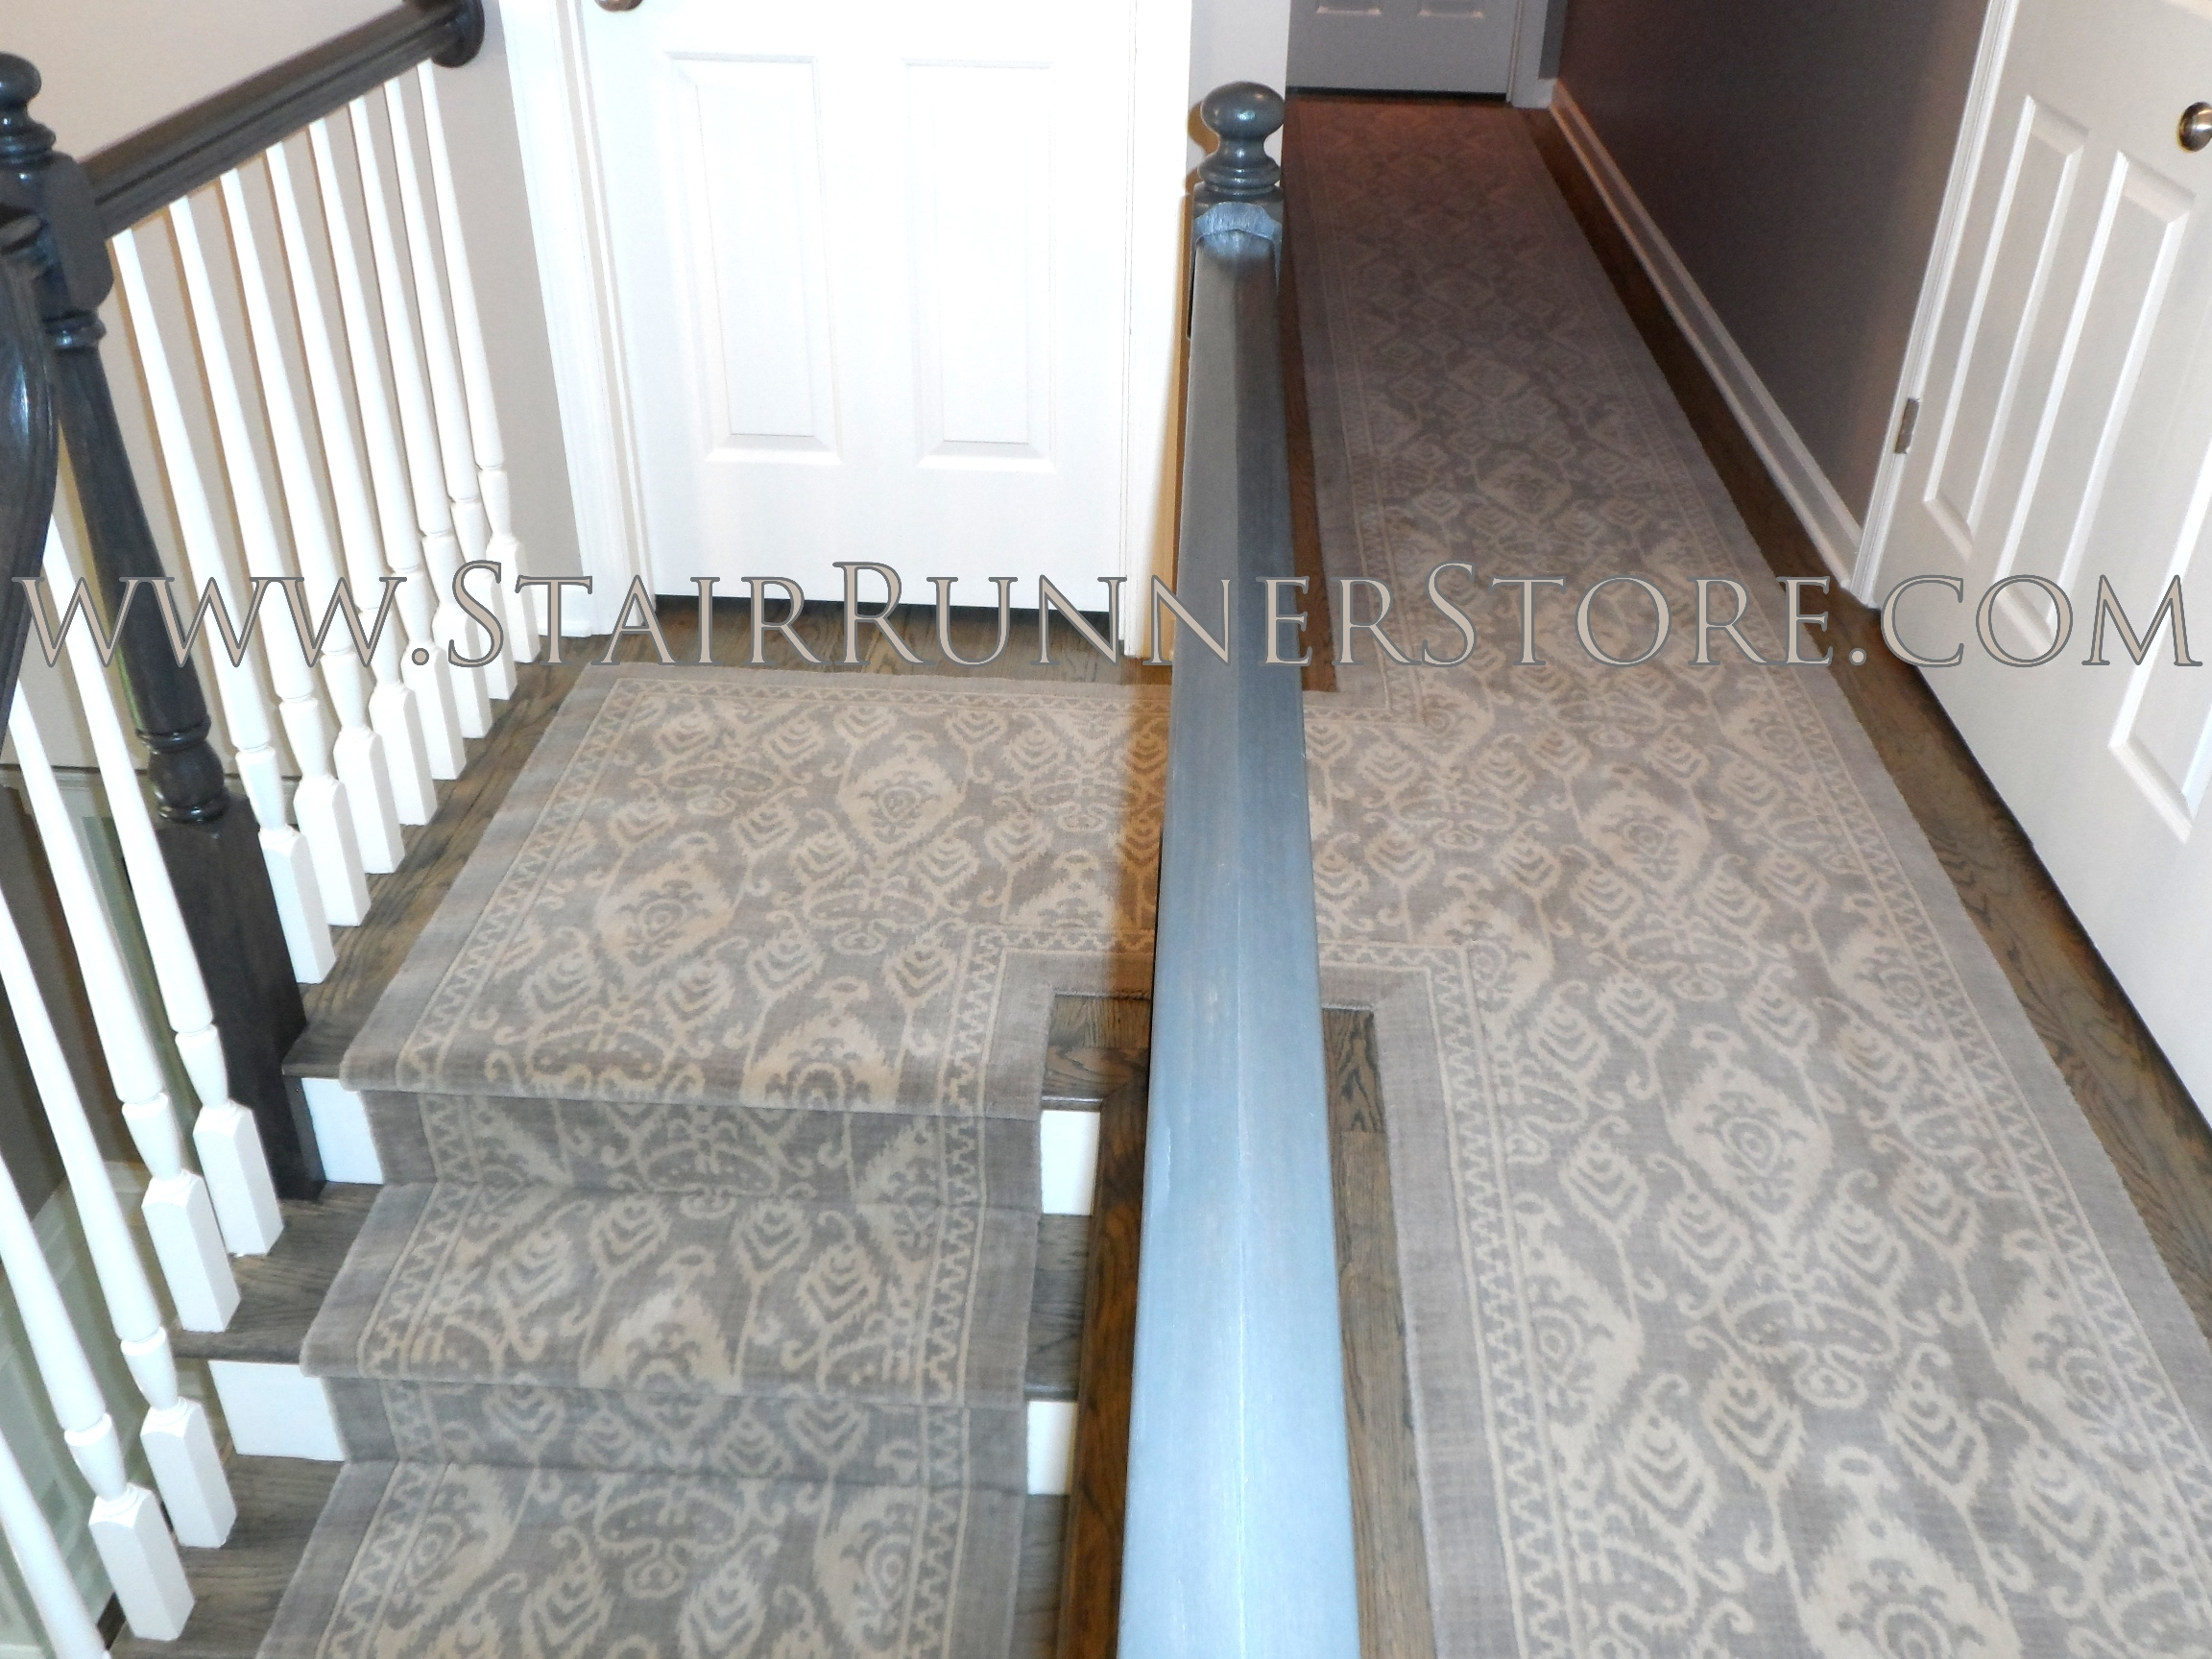 Flooring Lovely Hallway Runners For Floor Decor Idea Pertaining To Commercial Carpet Runners For Hallways (#11 of 20)